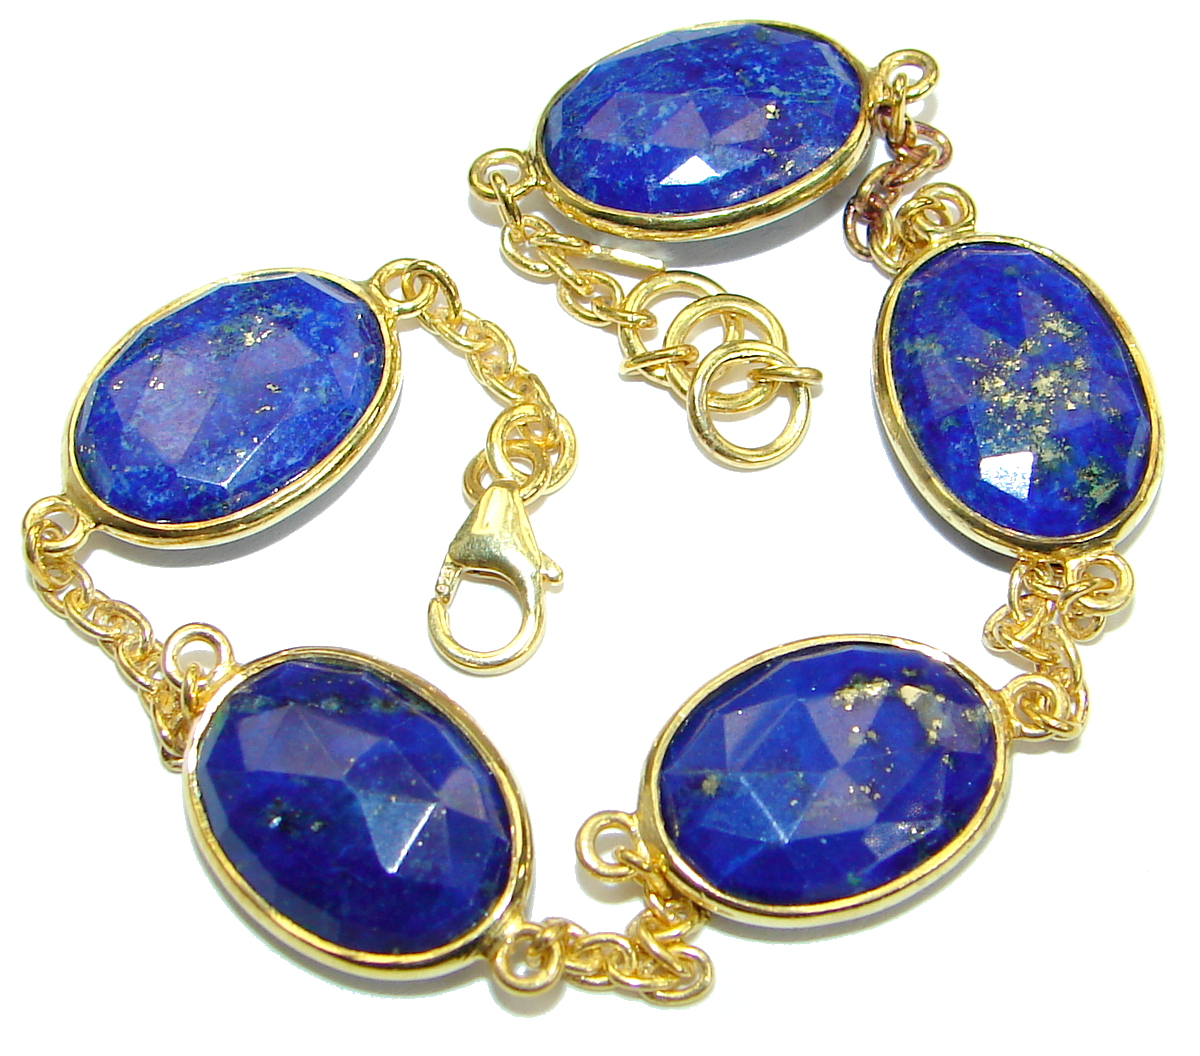 Flawless Passion Lapis Lazuli Gold plated over .925 Sterling Silver Bracelet